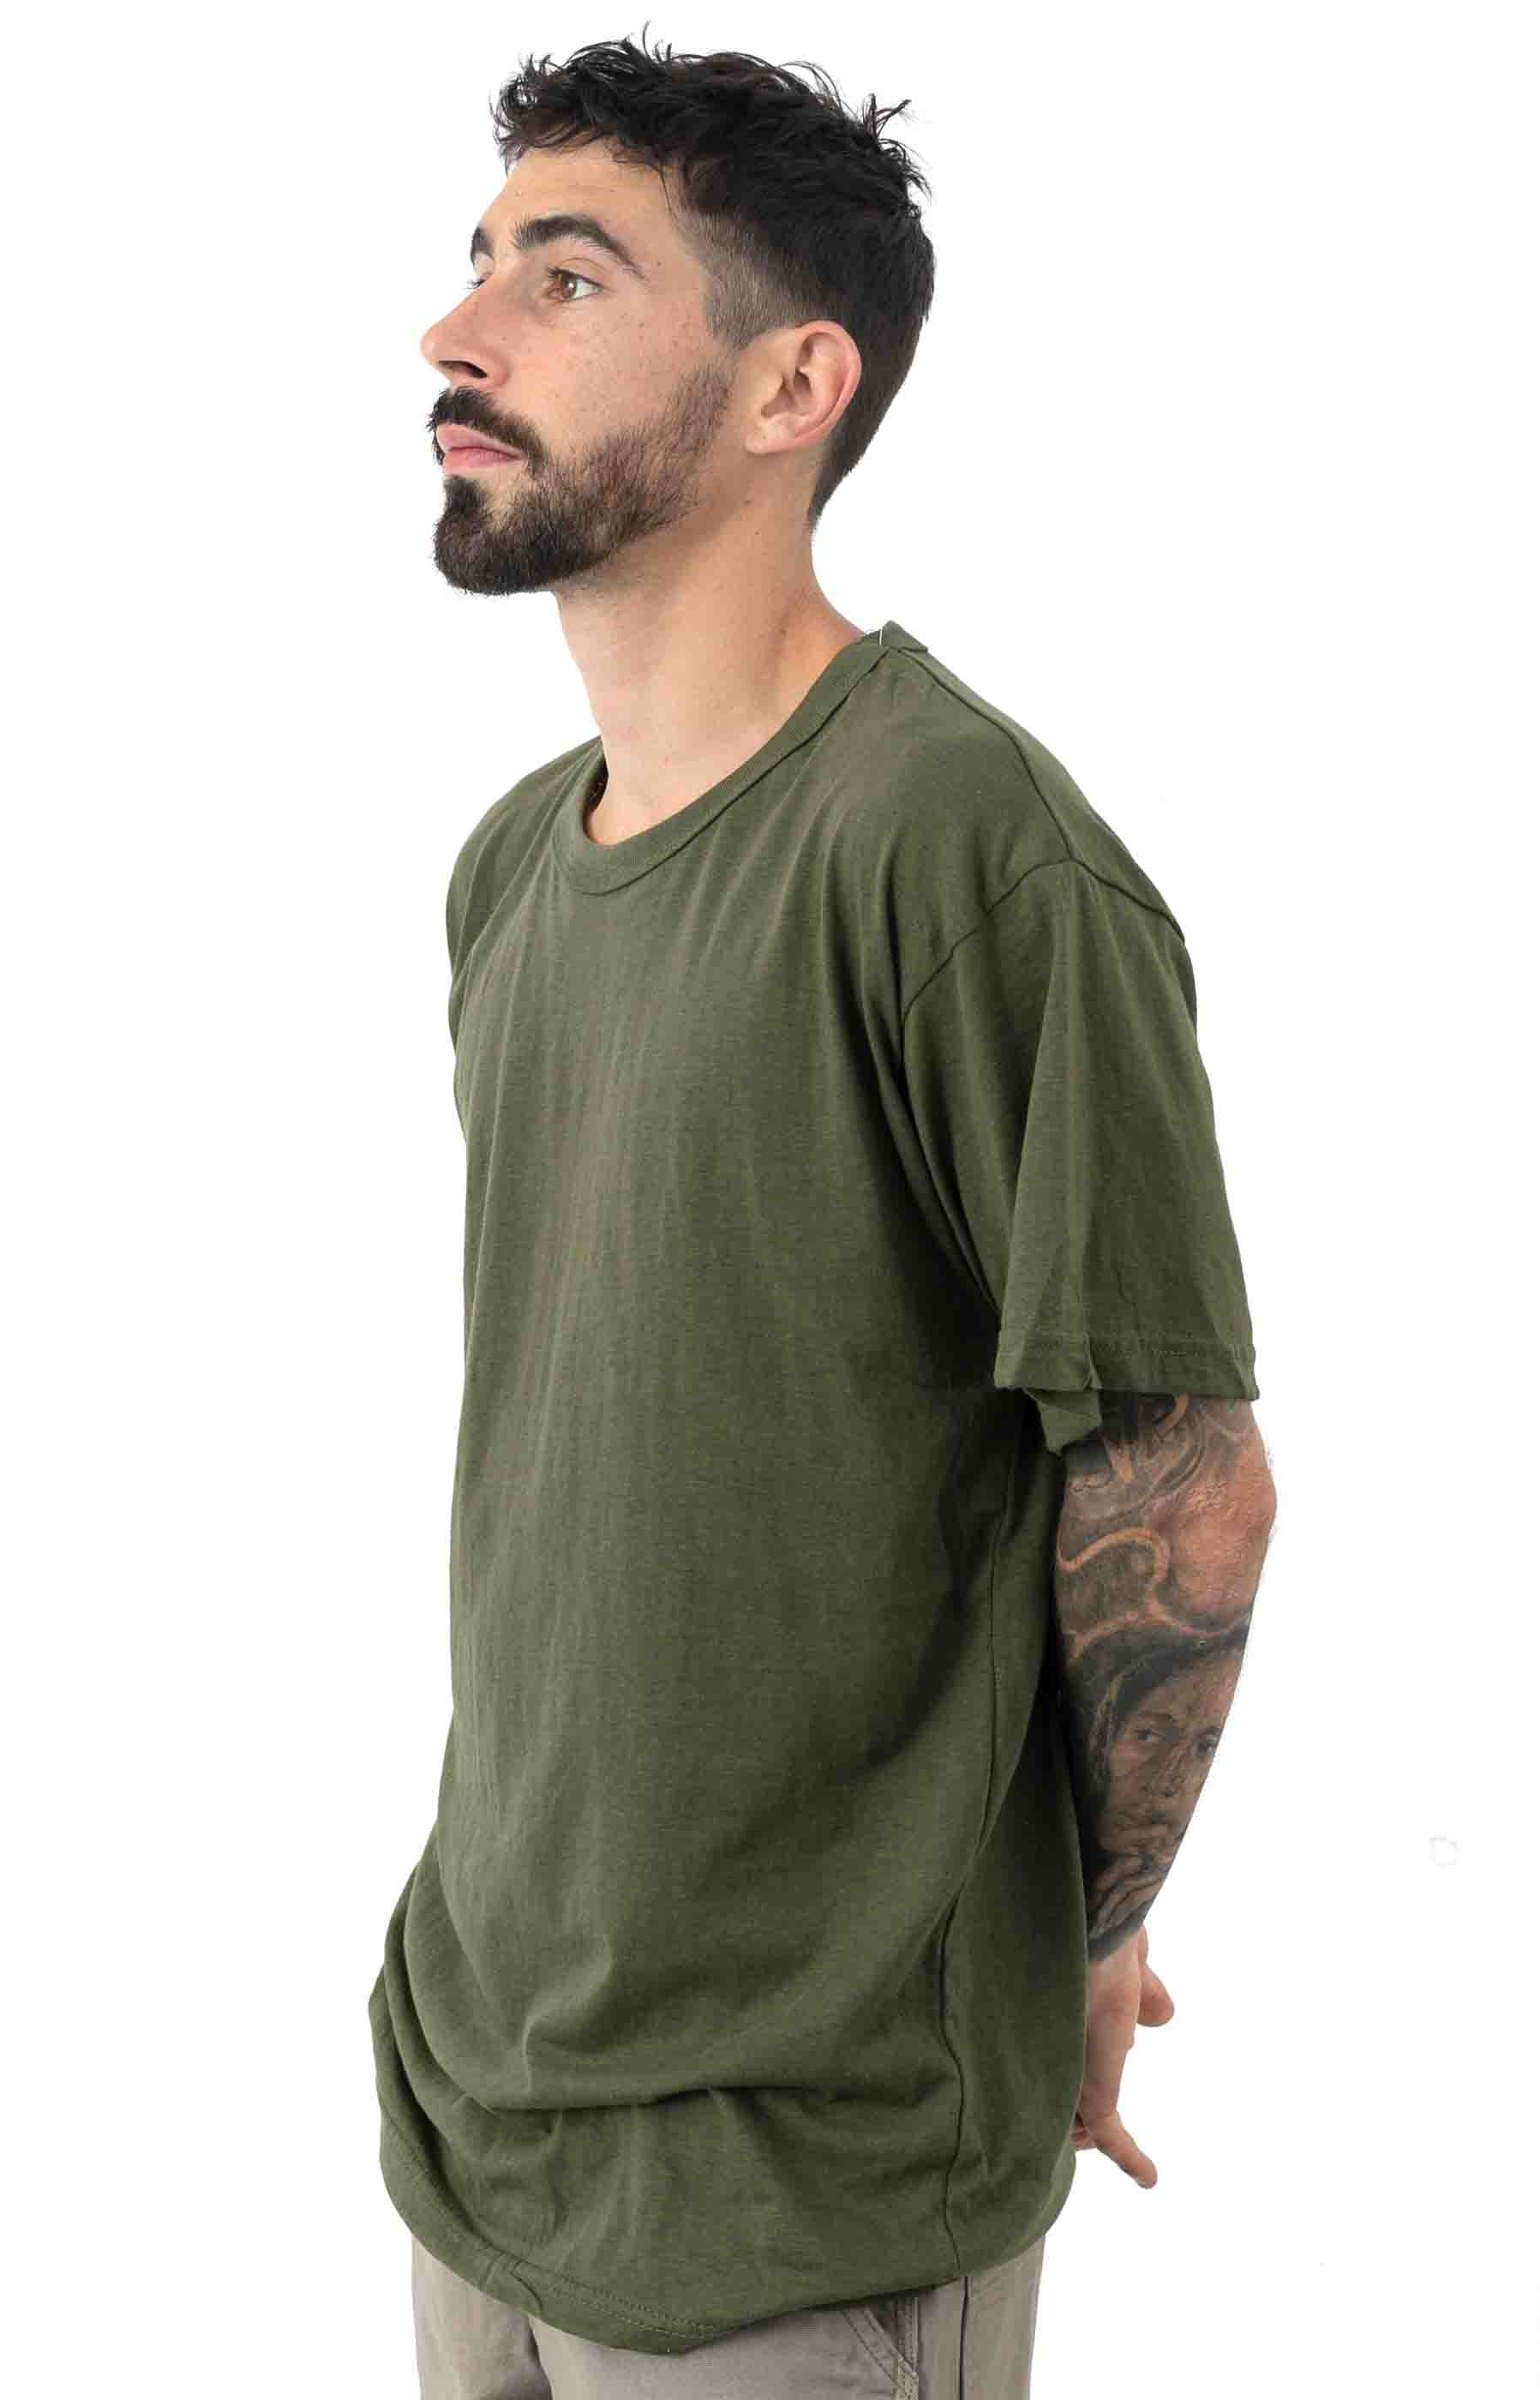 (6979) Solid Color Cotton / Polyester Blend Military T-Shirt - Olive Drab 2